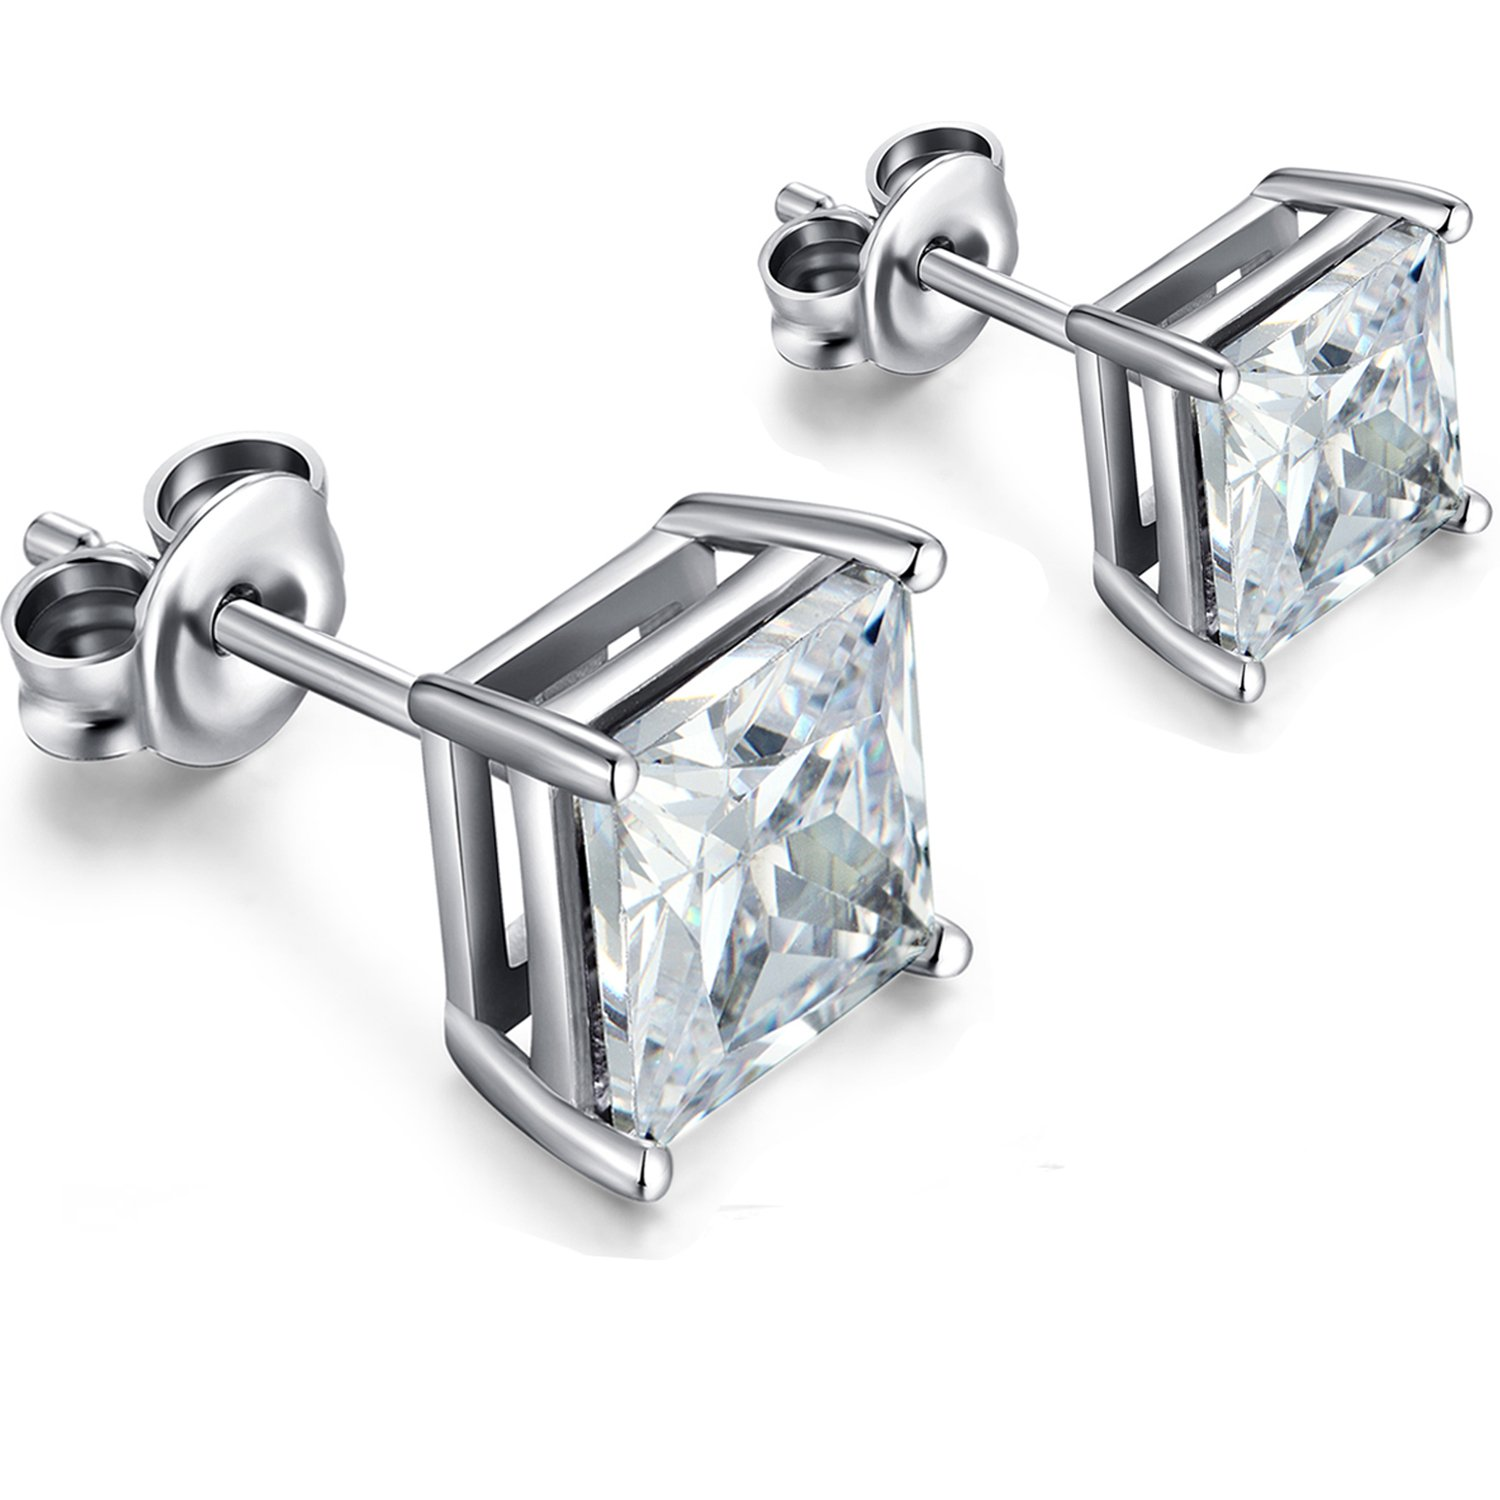 Silver Diamond Stud Earrings - Fashion Cubic Zirconia Sterling Silver Plated Gold Stud Earrings,Princess Cut Square CZ Diamond Gem Stone Stud Earrings for Women Men